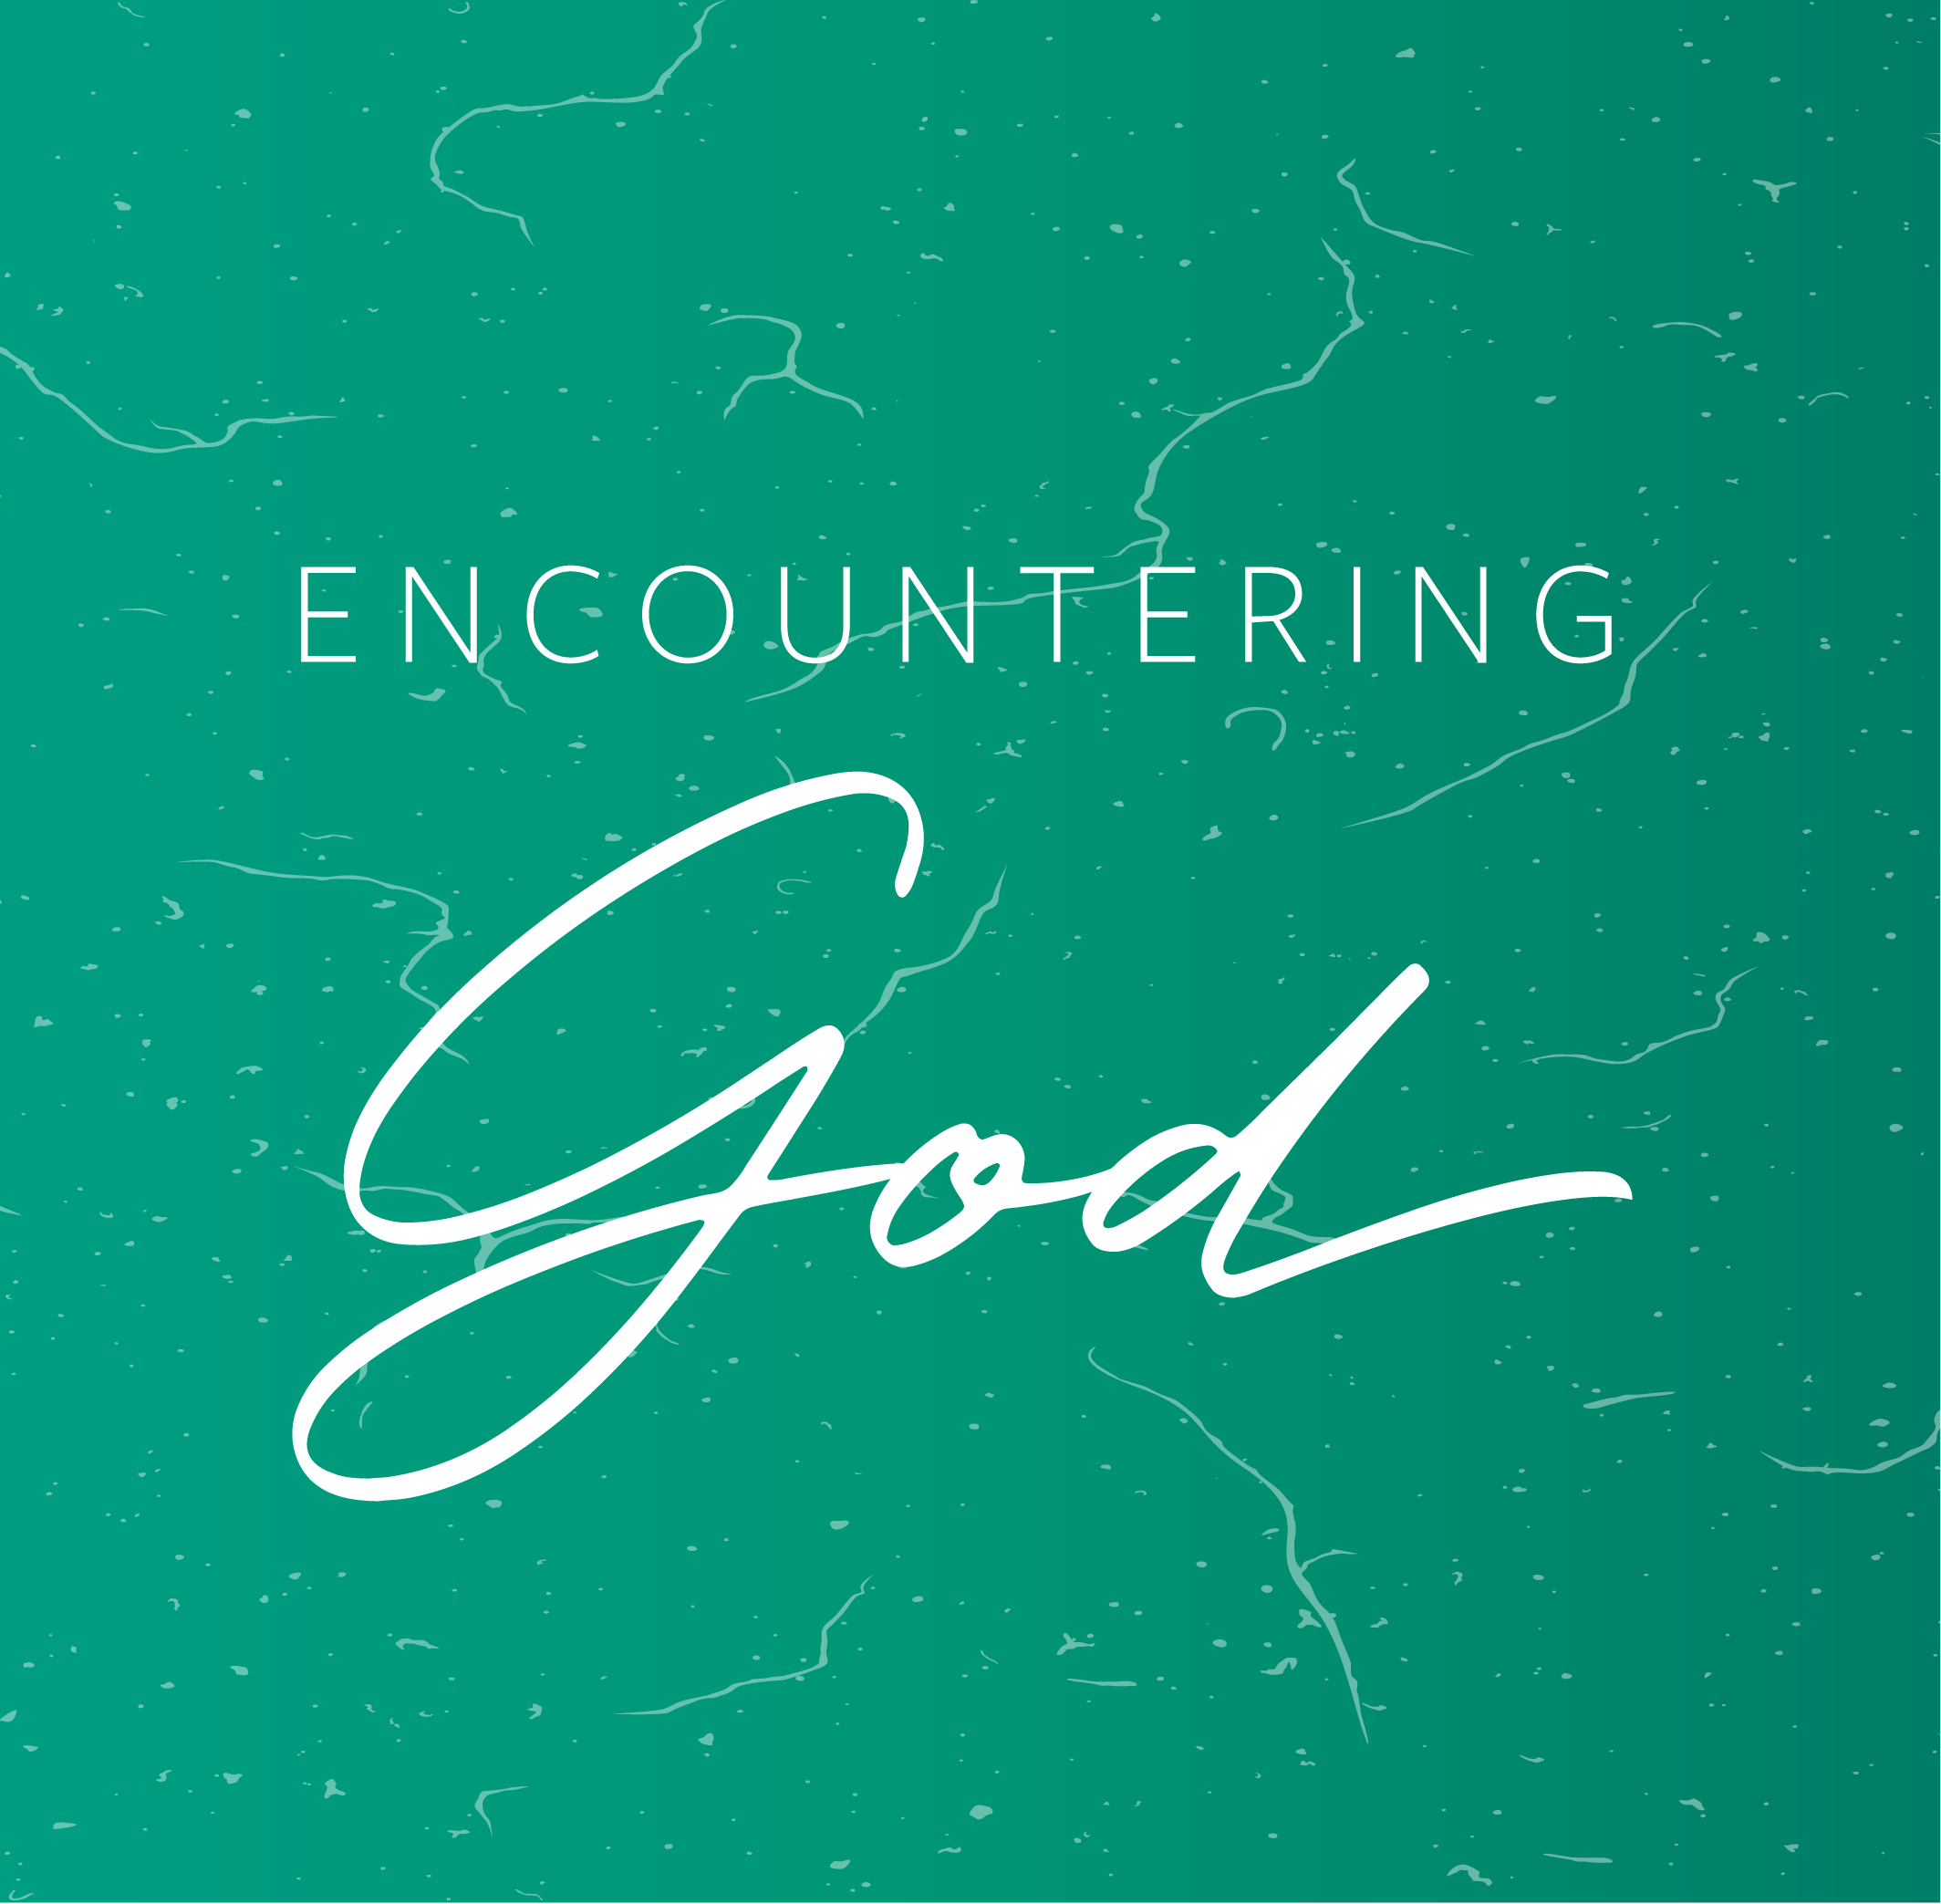 Encountering God - S.H.A.P.E. Up!